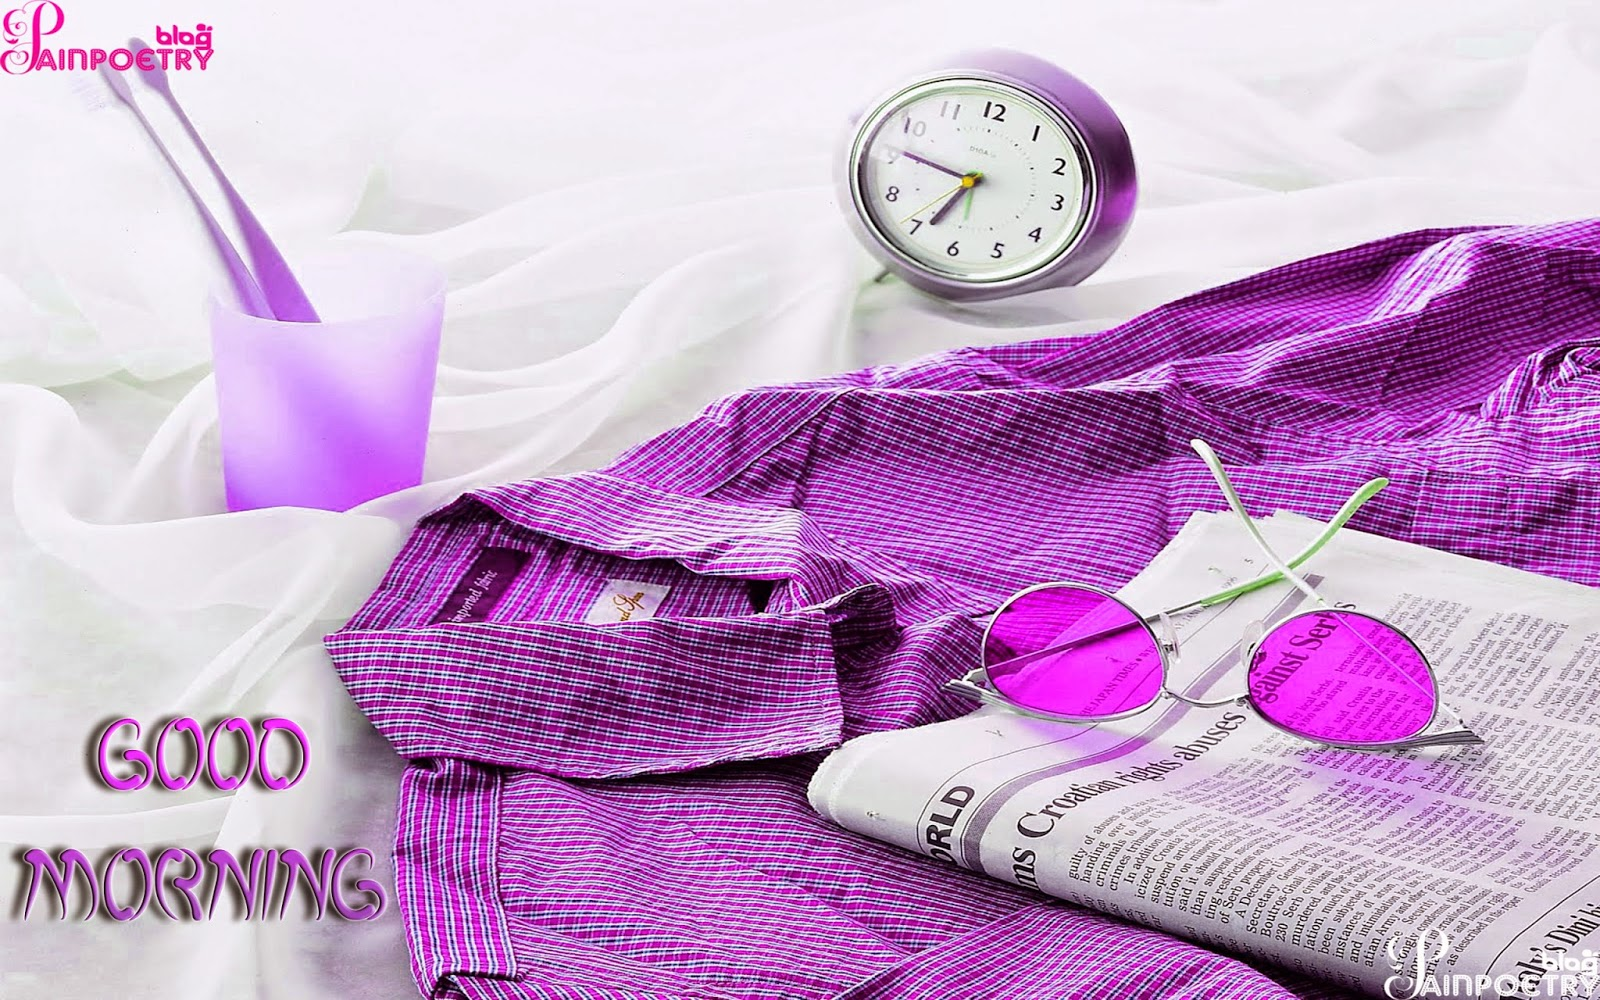 Good-Morning-Wishes-wallpaper-A-Nice-Day-With-Shirt-And-Book-Near-The-Clock-And-Glass-Wide